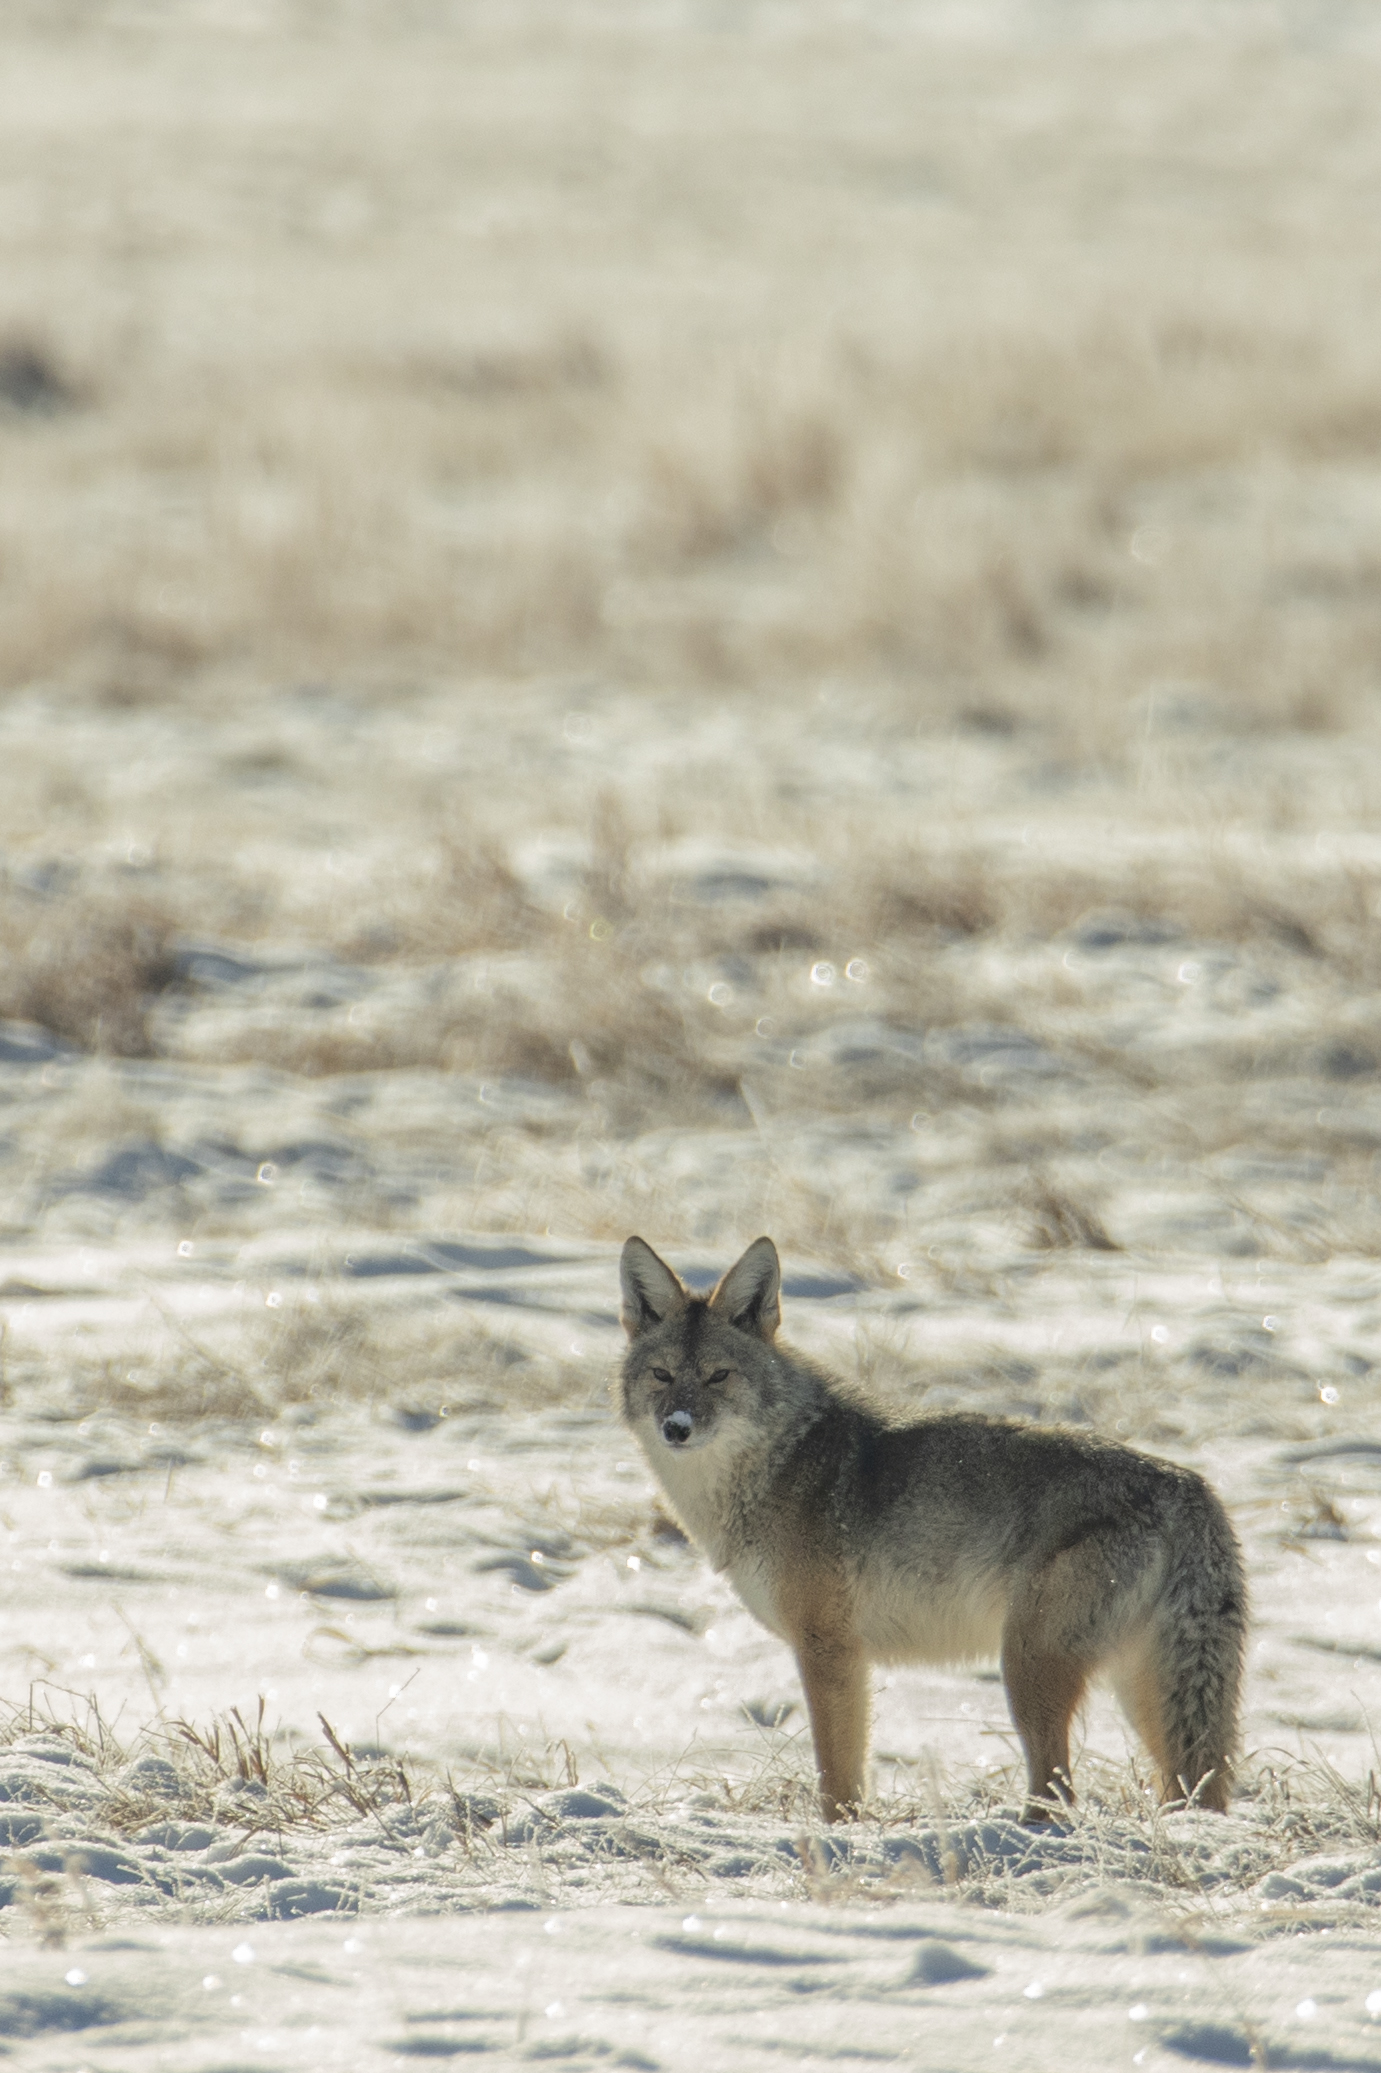 74572 download wallpaper Animals, Coyote, Animal, Grey, Snow, Winter, Wildlife screensavers and pictures for free